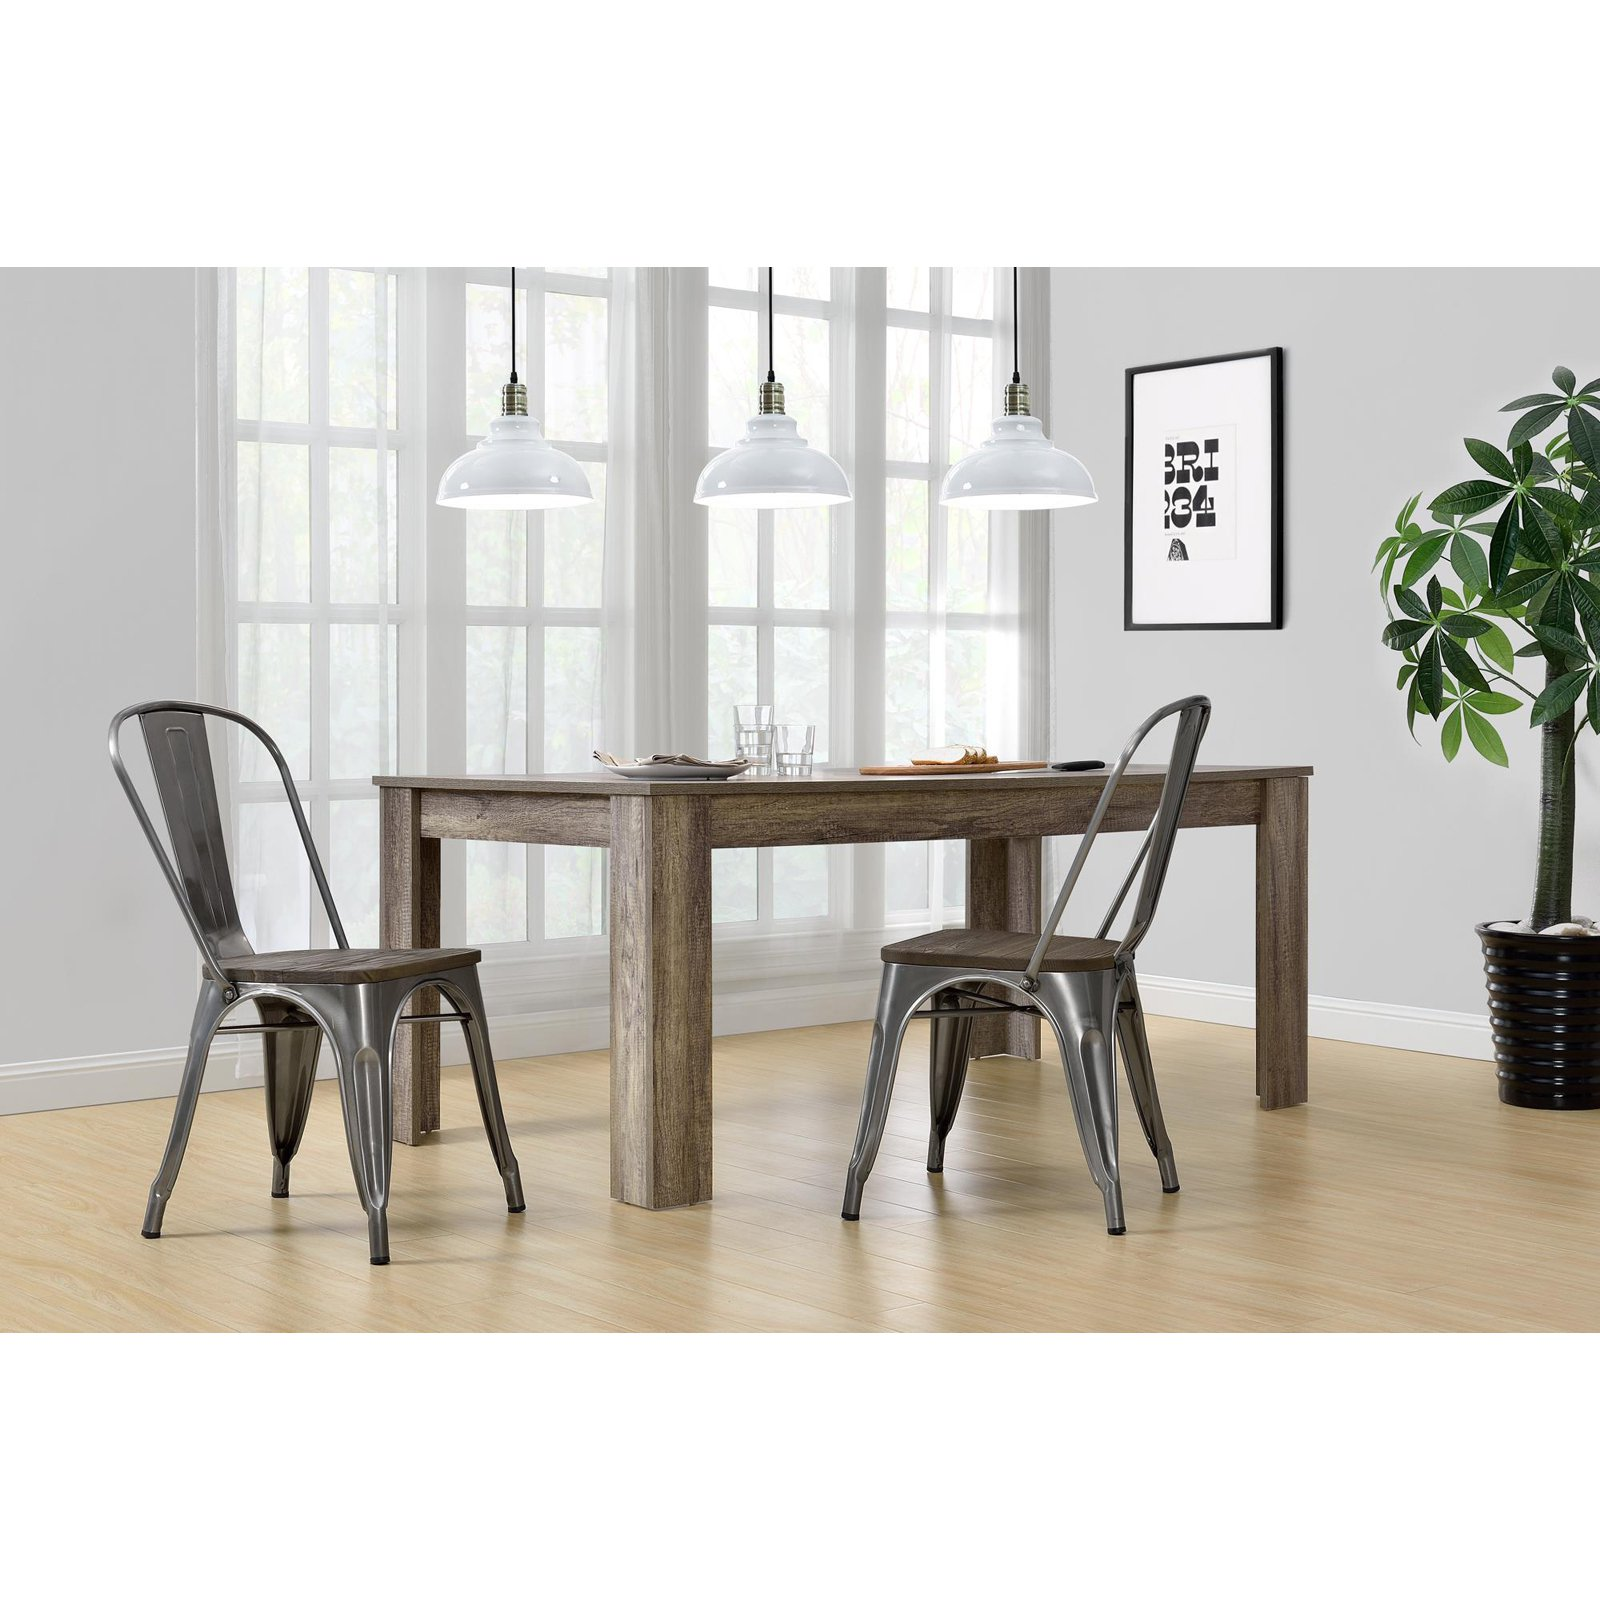 DHP Fusion Metal Dining Chair with Wood Seat, Set of 2, Various